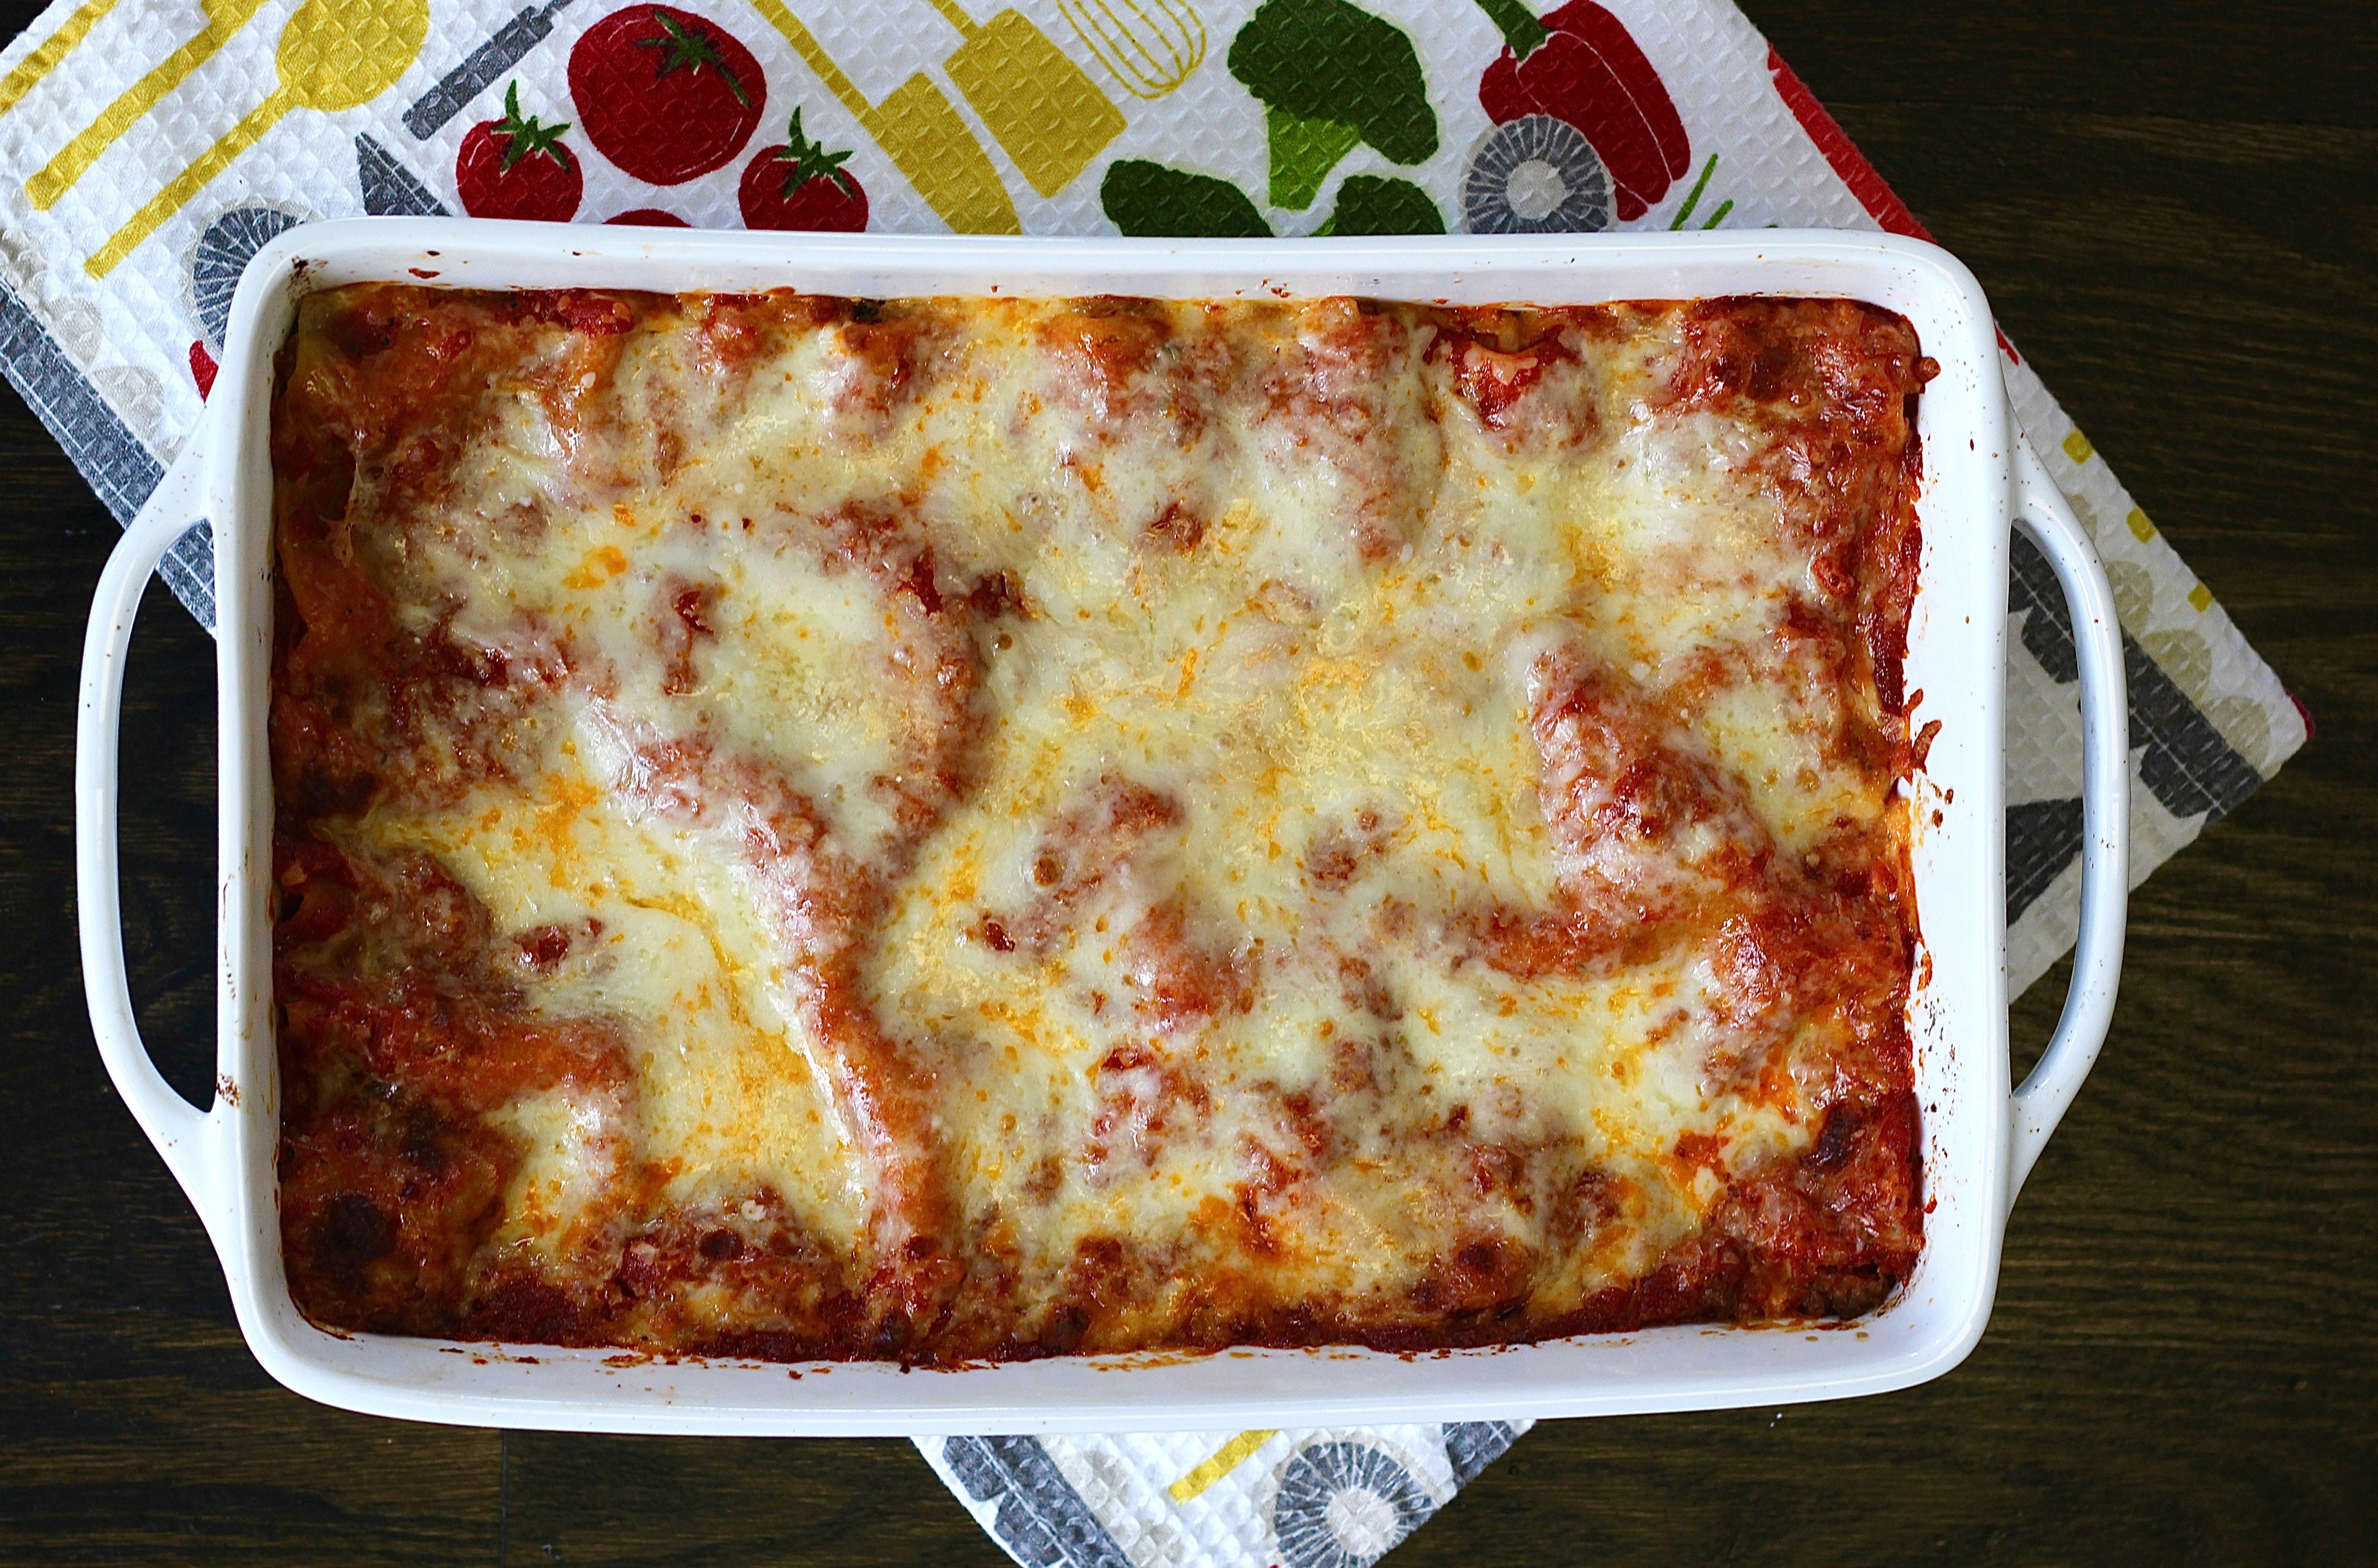 Healthy Turkey Lasagna  AN EASY WEEKNIGHT RECIPE & TIPS FOR CLEANING UP IN THE